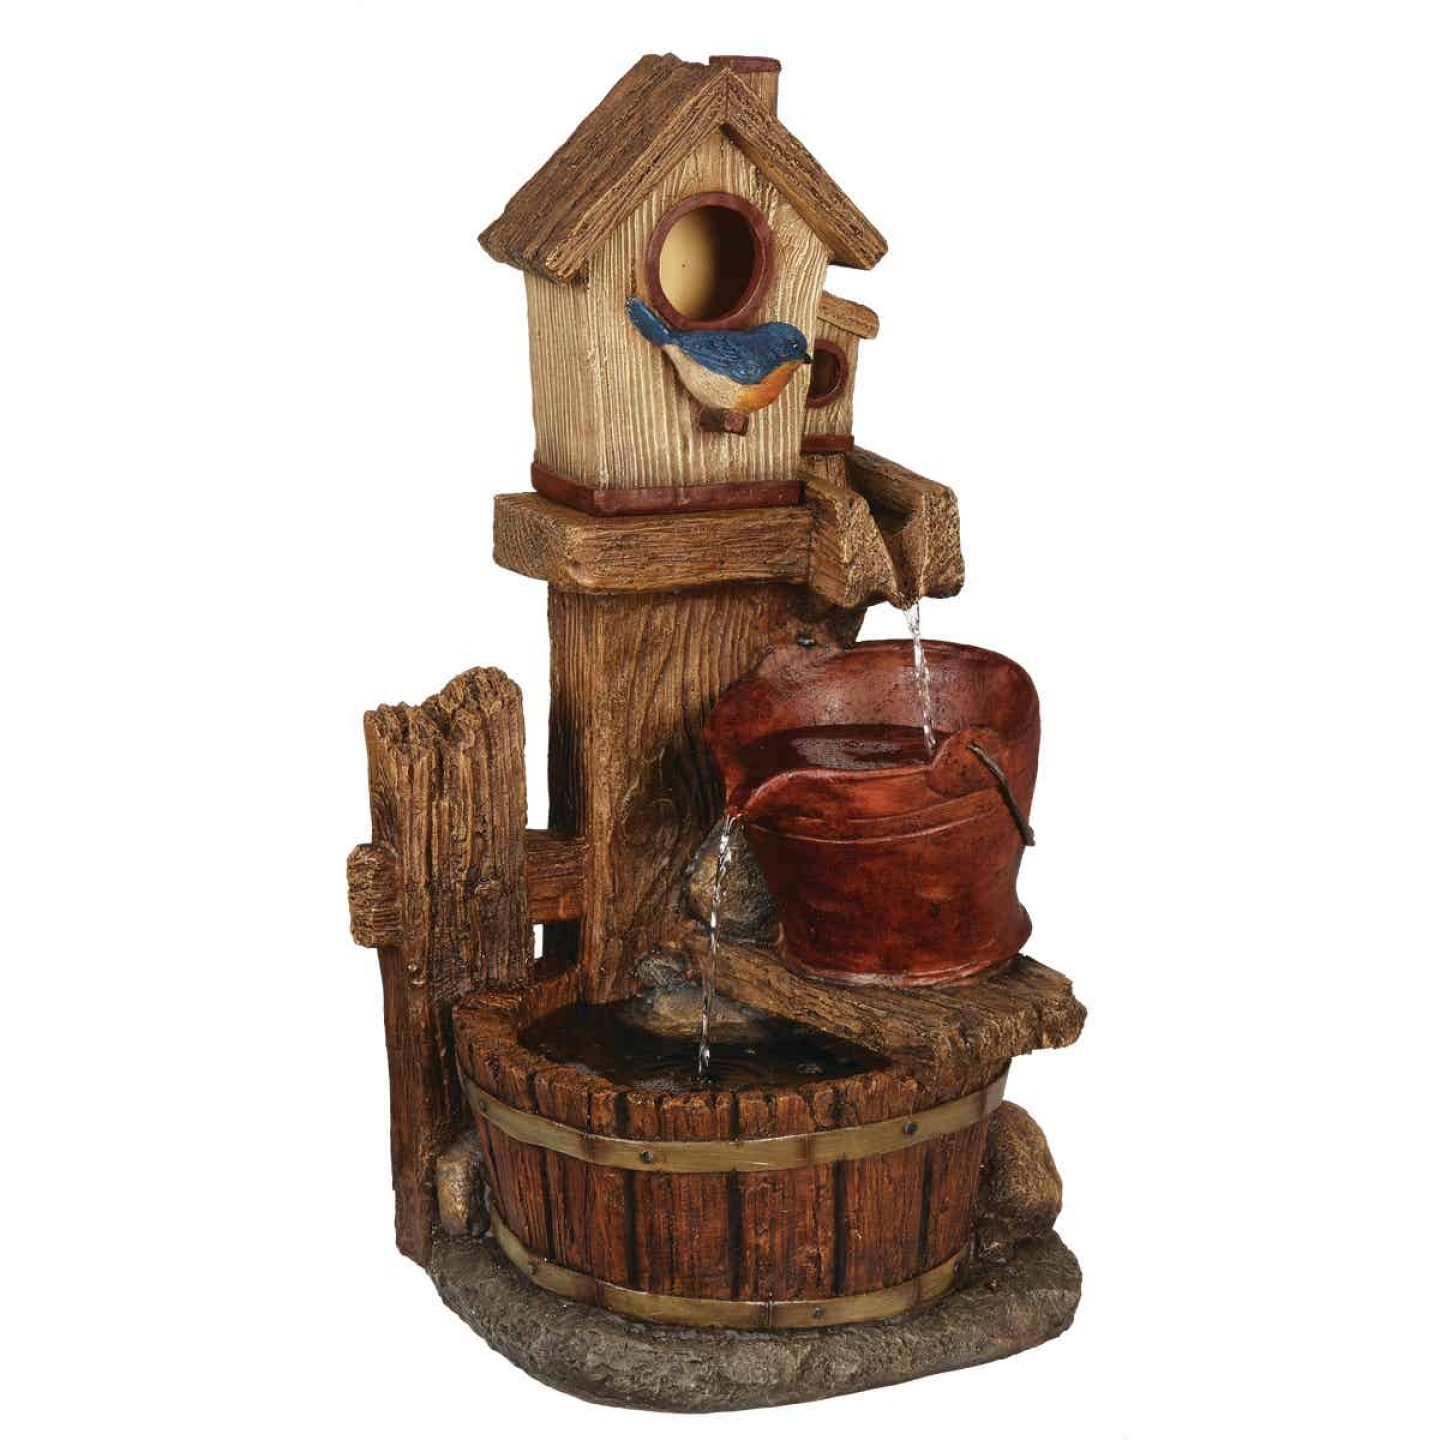 Best Garden 13.5 In. W. x 26.5 In. H. x 10.5 In. L. Polyresin Birdhouse Fountain Image 1